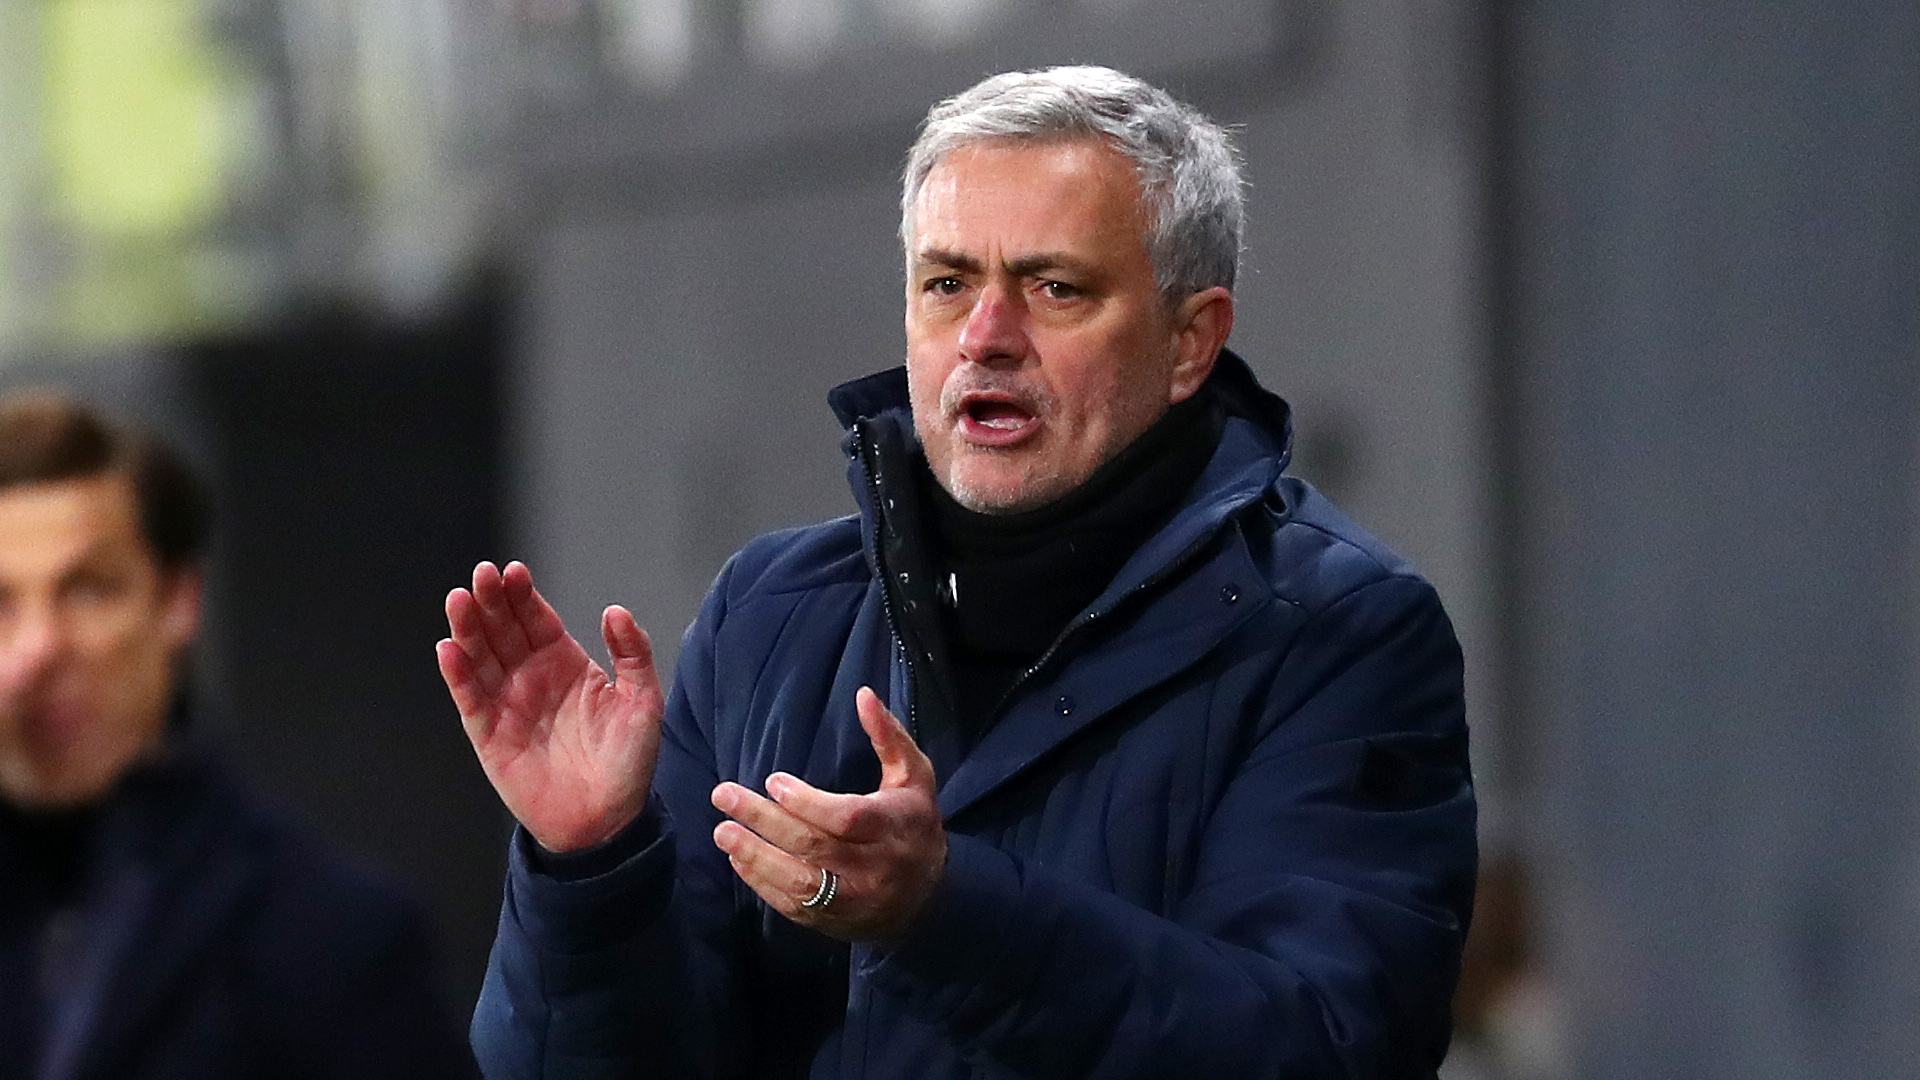 Mourinho calls for Tottenham passion after 'one of the most difficult' defeats